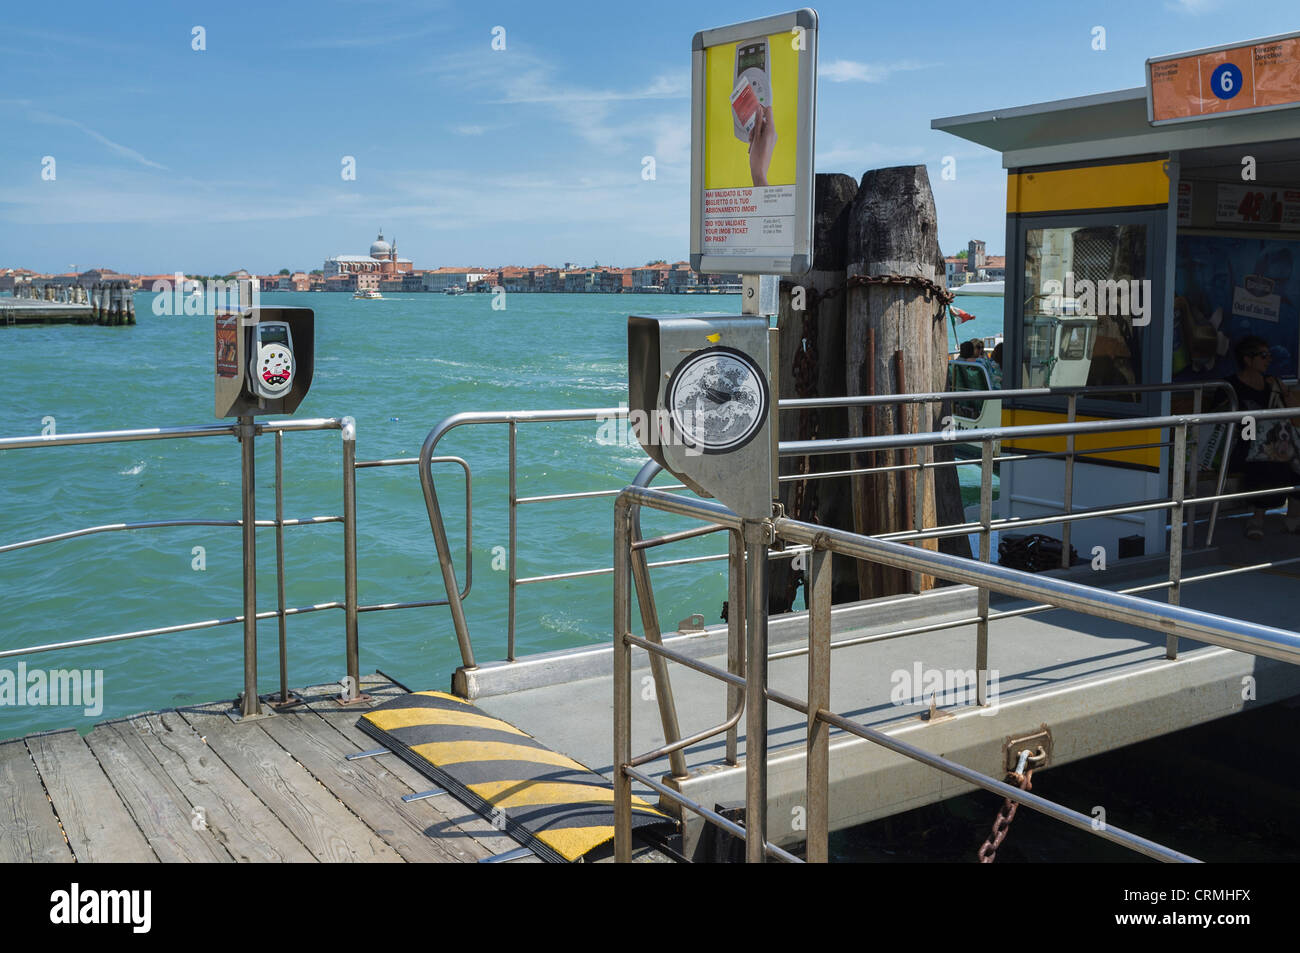 Valporetto ticket validation machines at a water bus stop on the Venice Lagoon - Stock Image